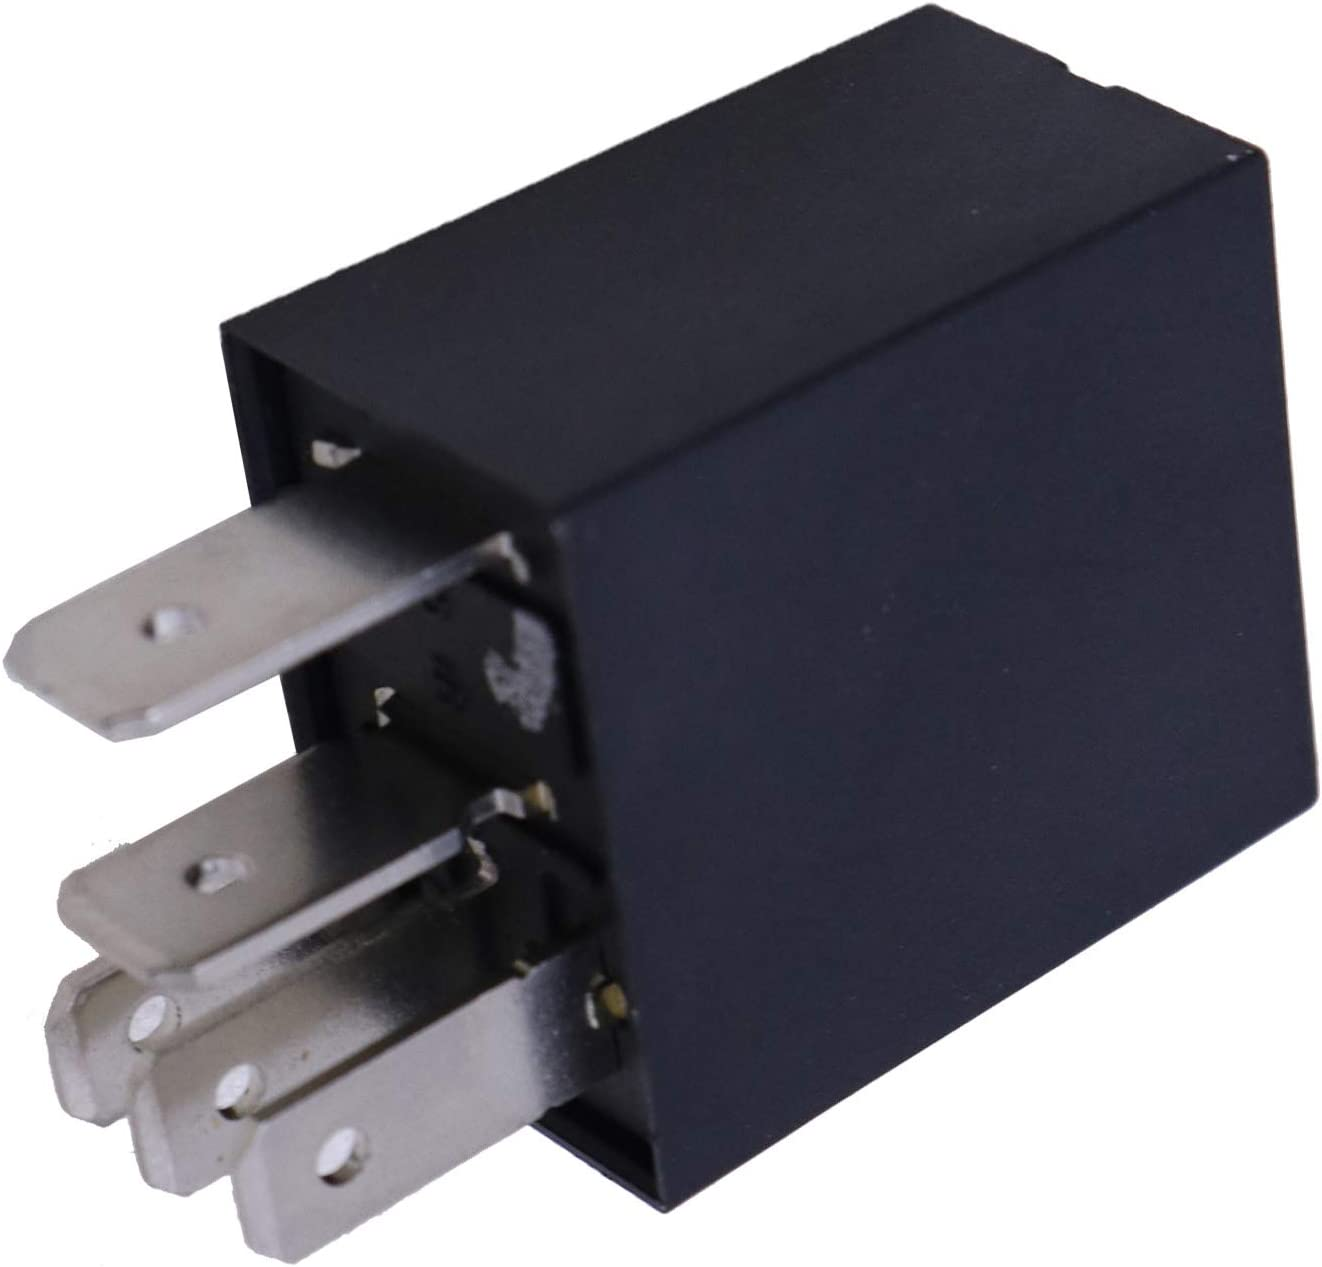 Friday Part 12V Relay 87414866 4120472 for Case 3185 3210 4420 4430 FLX3010 FLX3510 FLX4010 FLX4510 2377 2388 2577 2588 420 5088 5130 5140 6088 6130 6140 WD1203 WD1204 WD1504 WD1903 WD1904 DX40 DX45